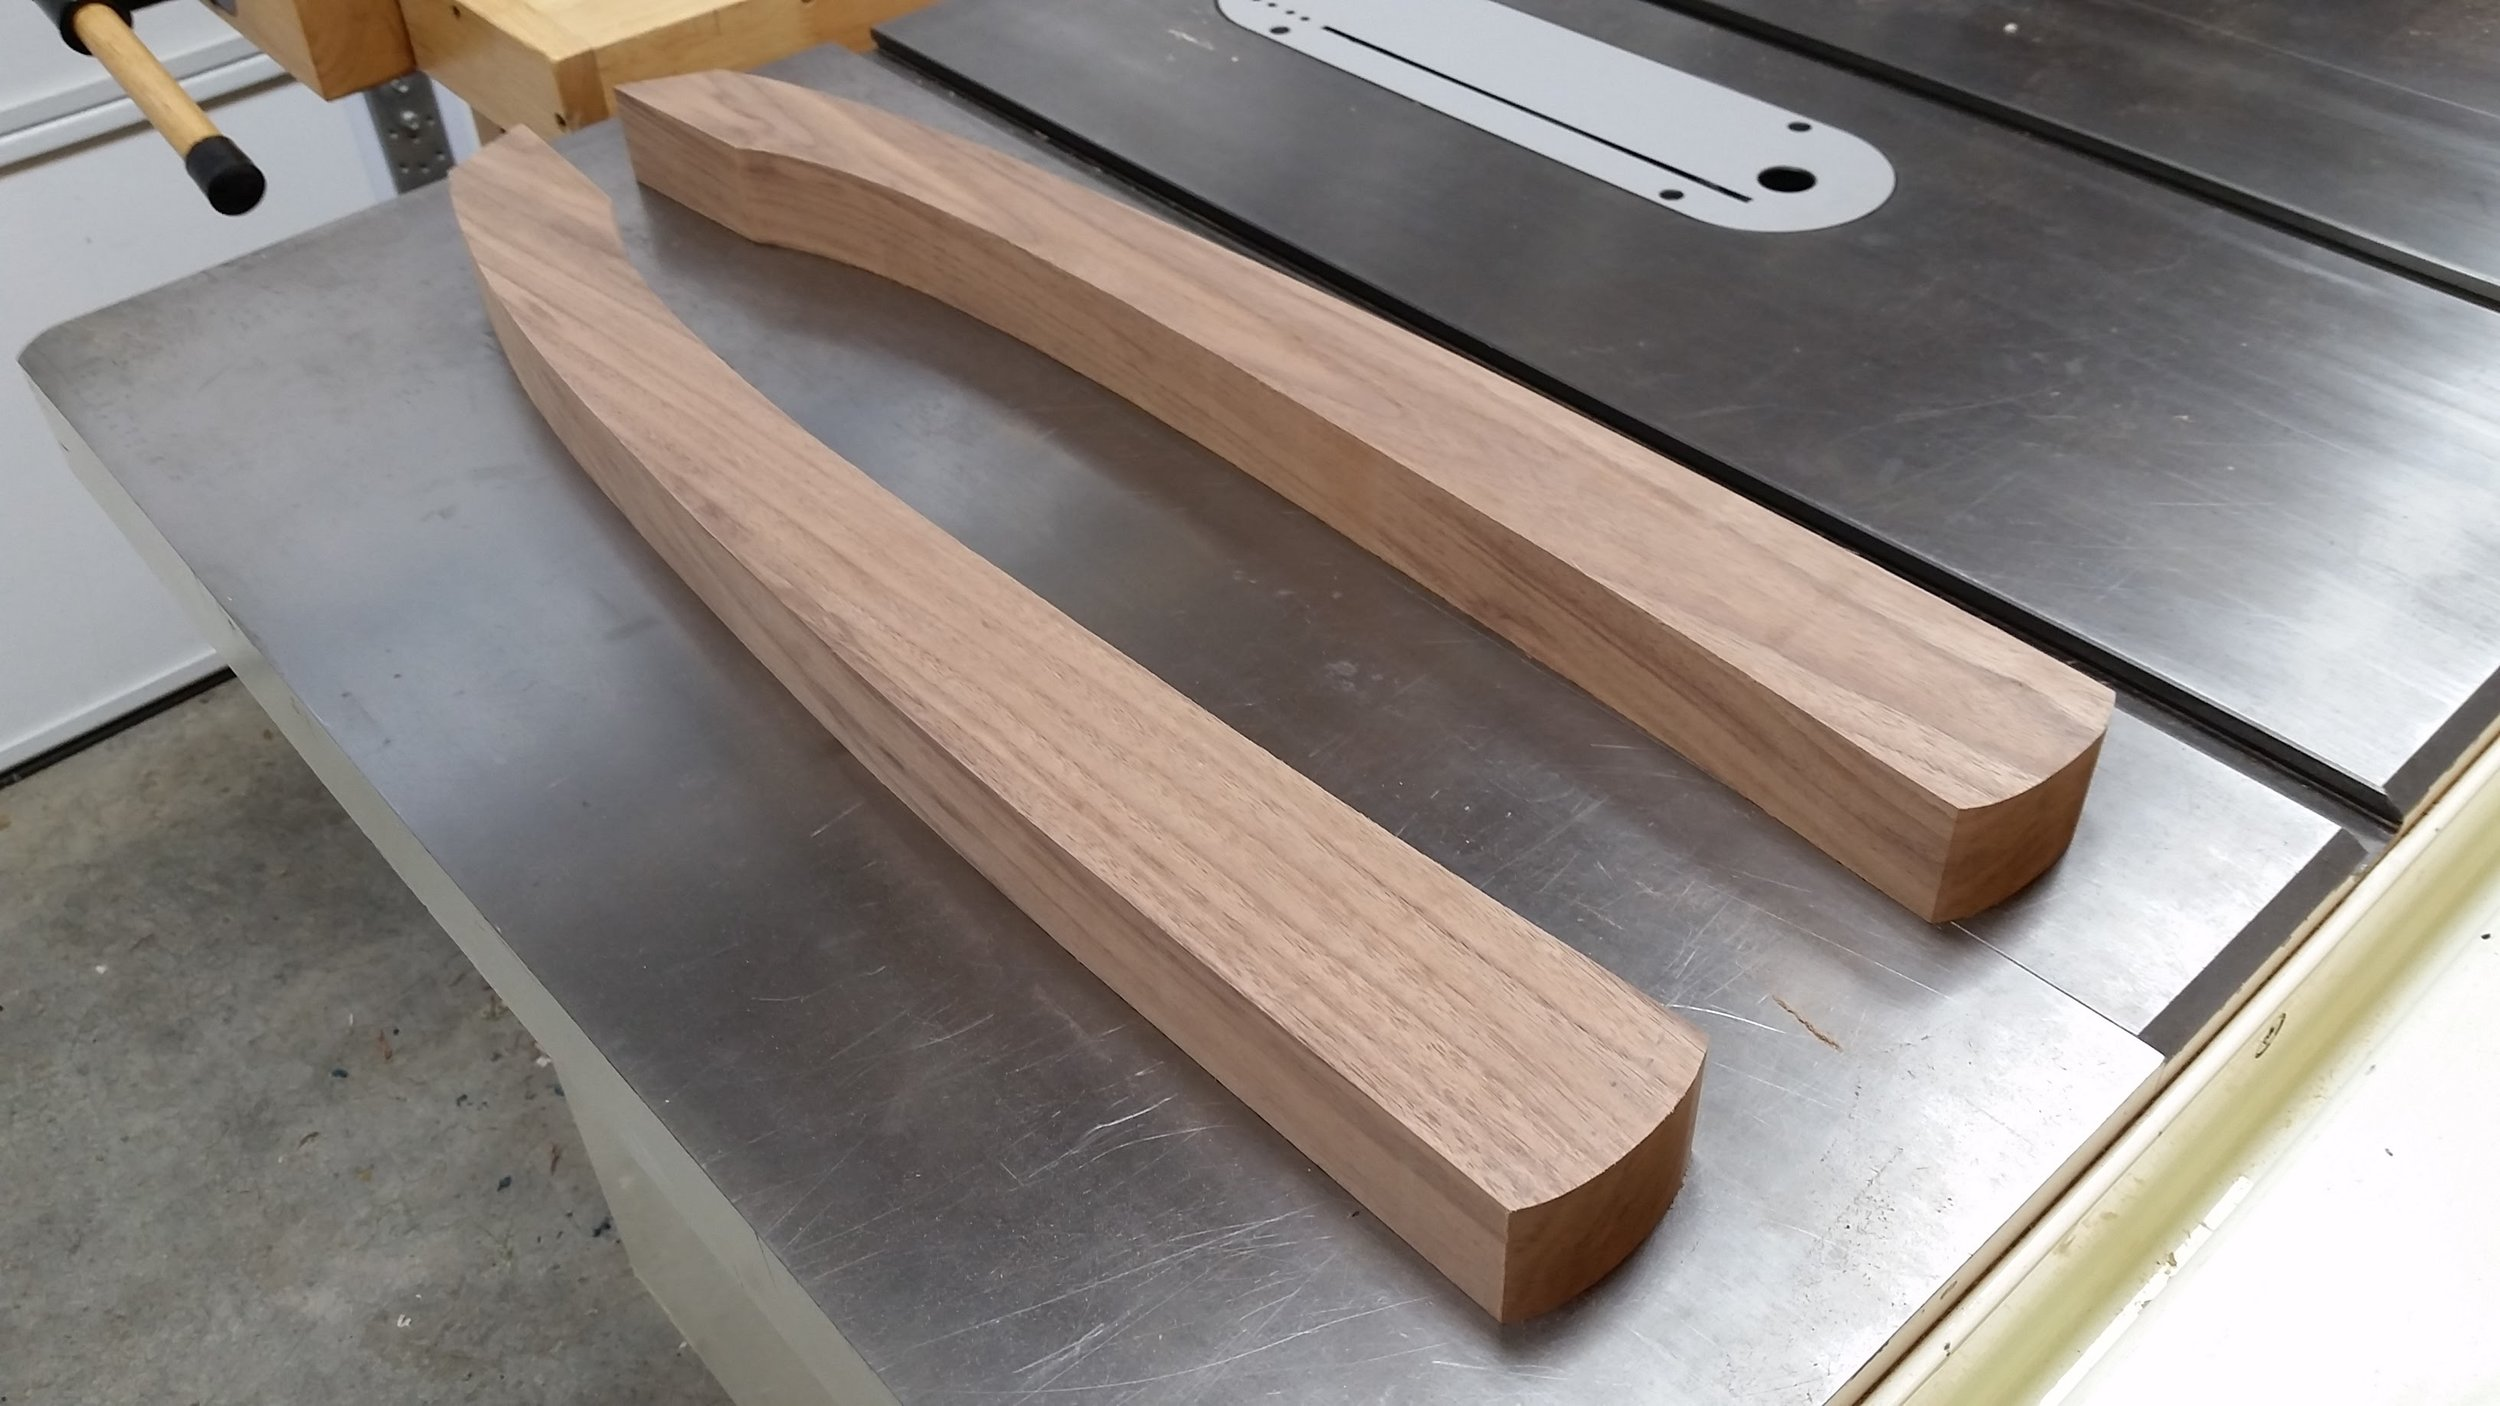 "I put the new 1/4"" bandsaw blade to work and cut out the two arm blanks. Then a few minutes on the spindle sander to smooth the edges, and BAM, I now have two arms ready to go."